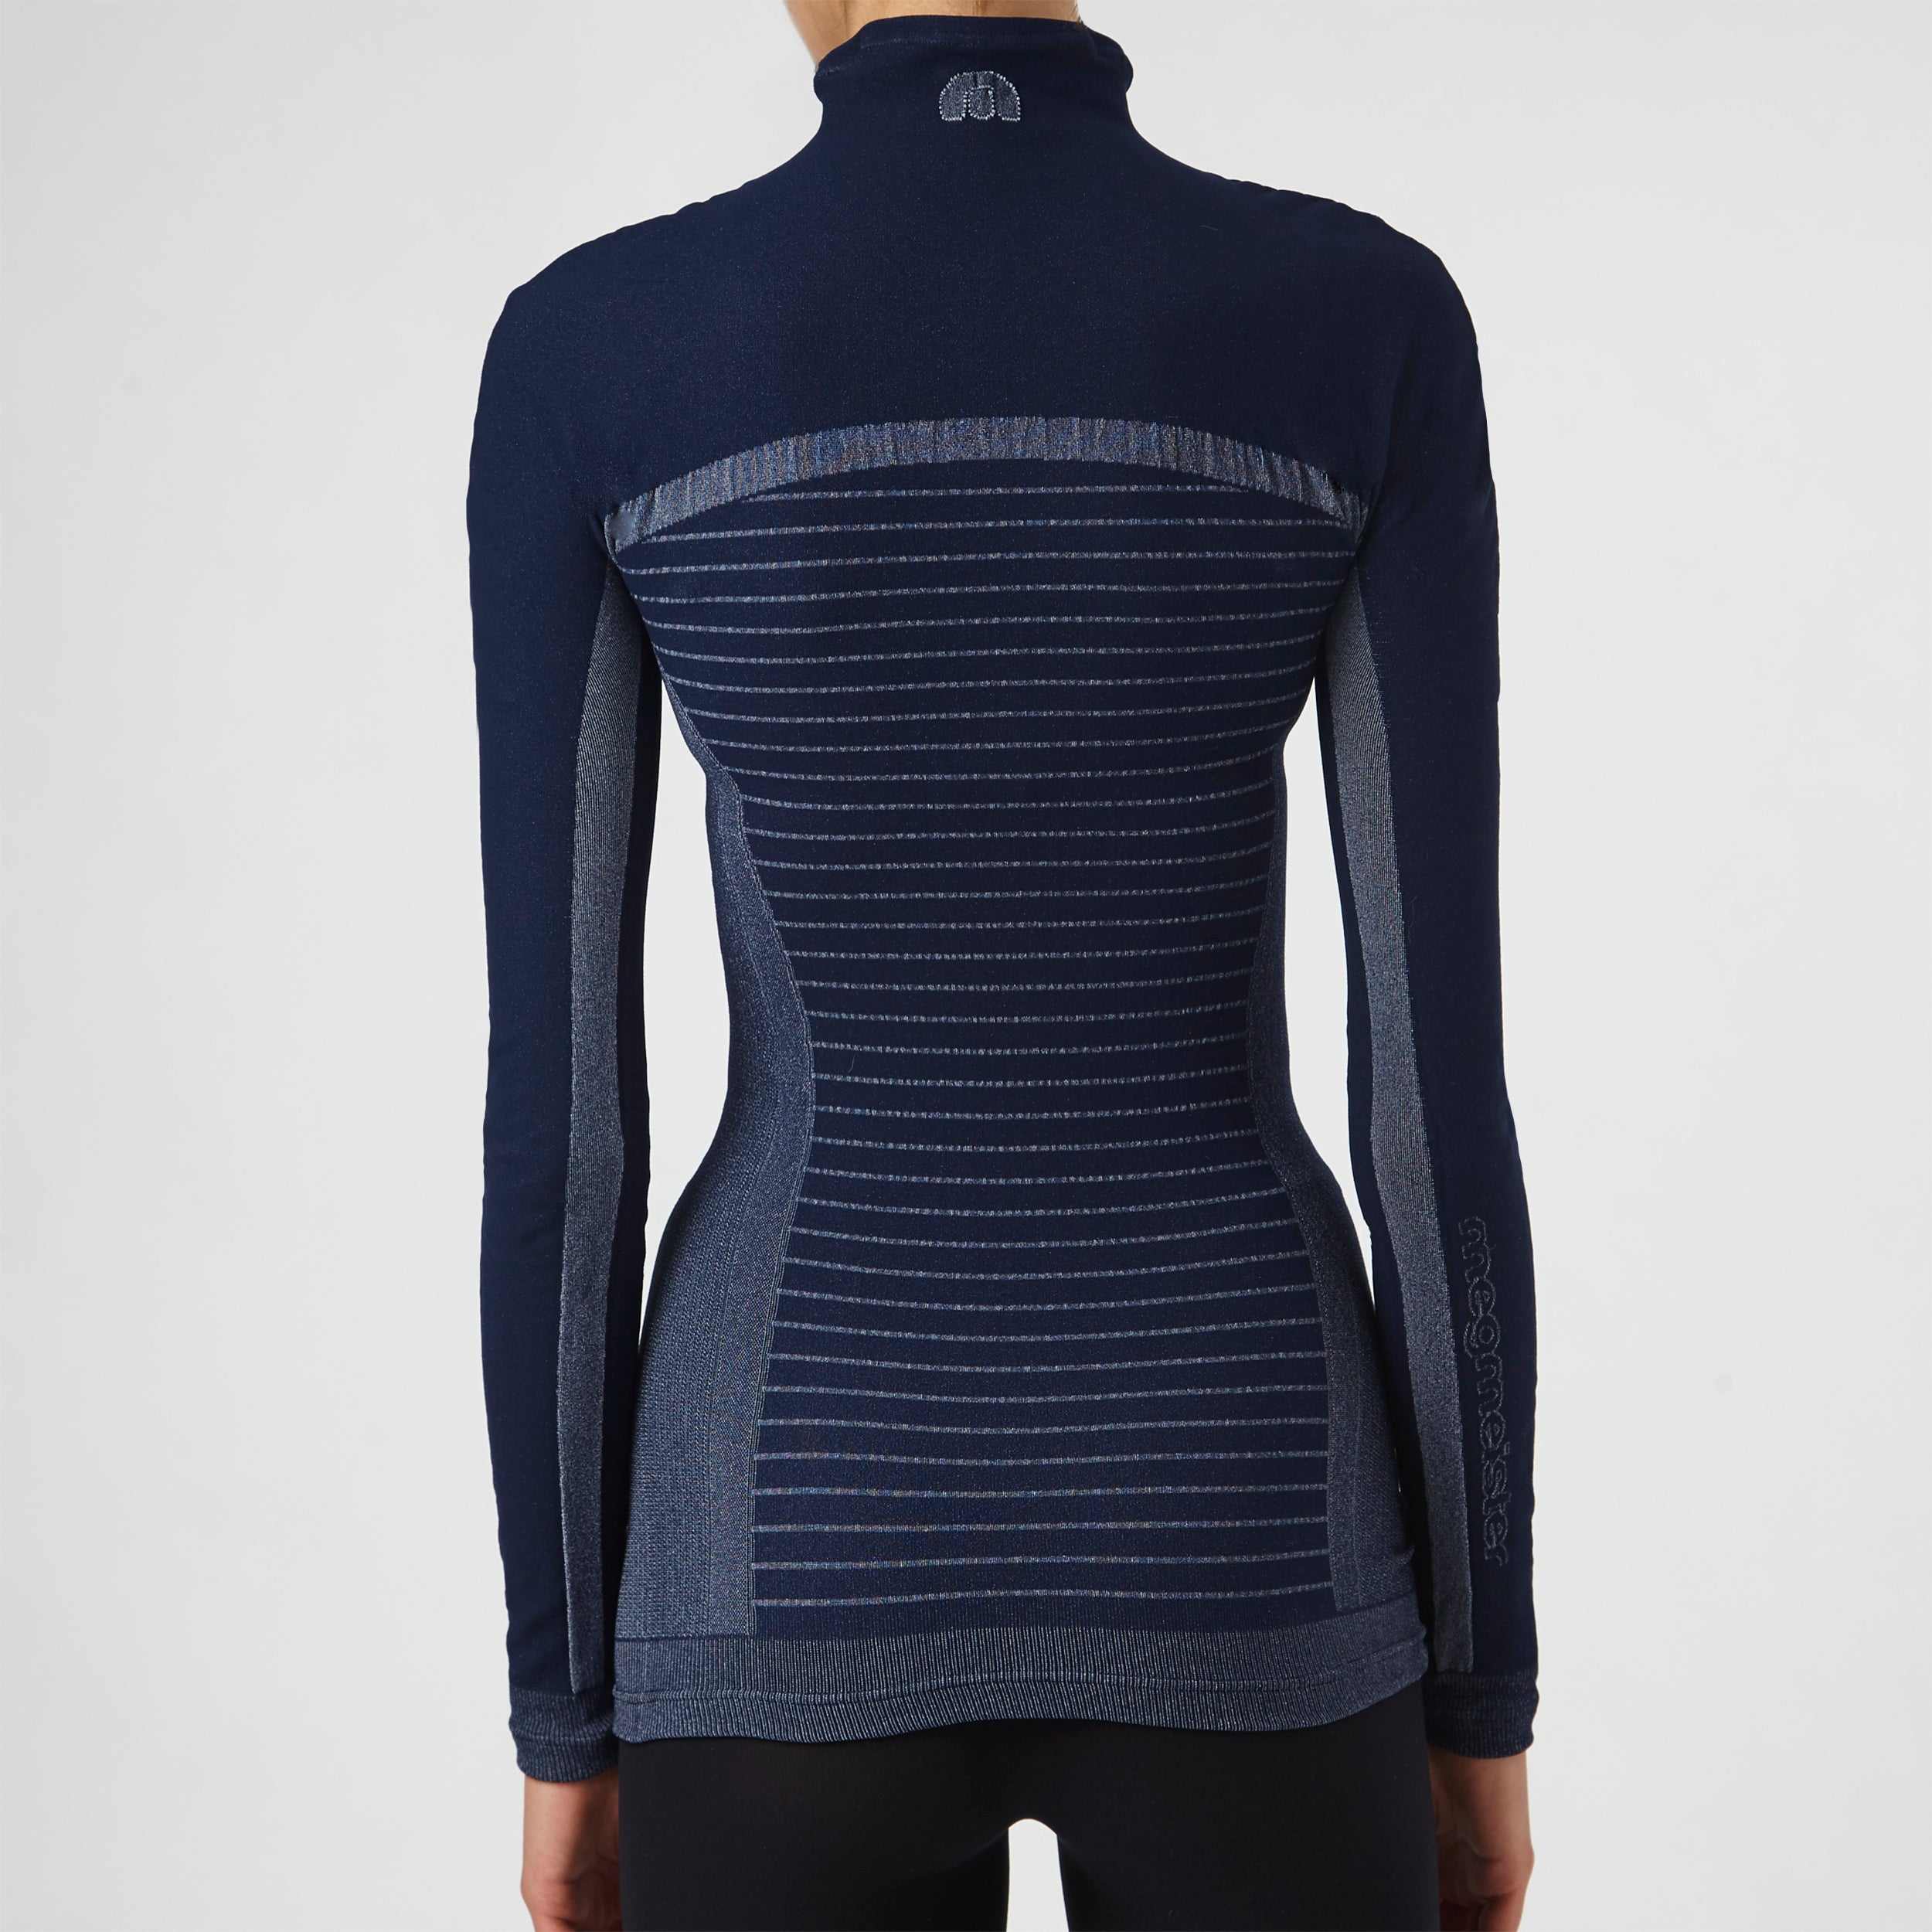 megmeister-womens-drynamo-high-neck-base-layer-black-back-and-stripe-view